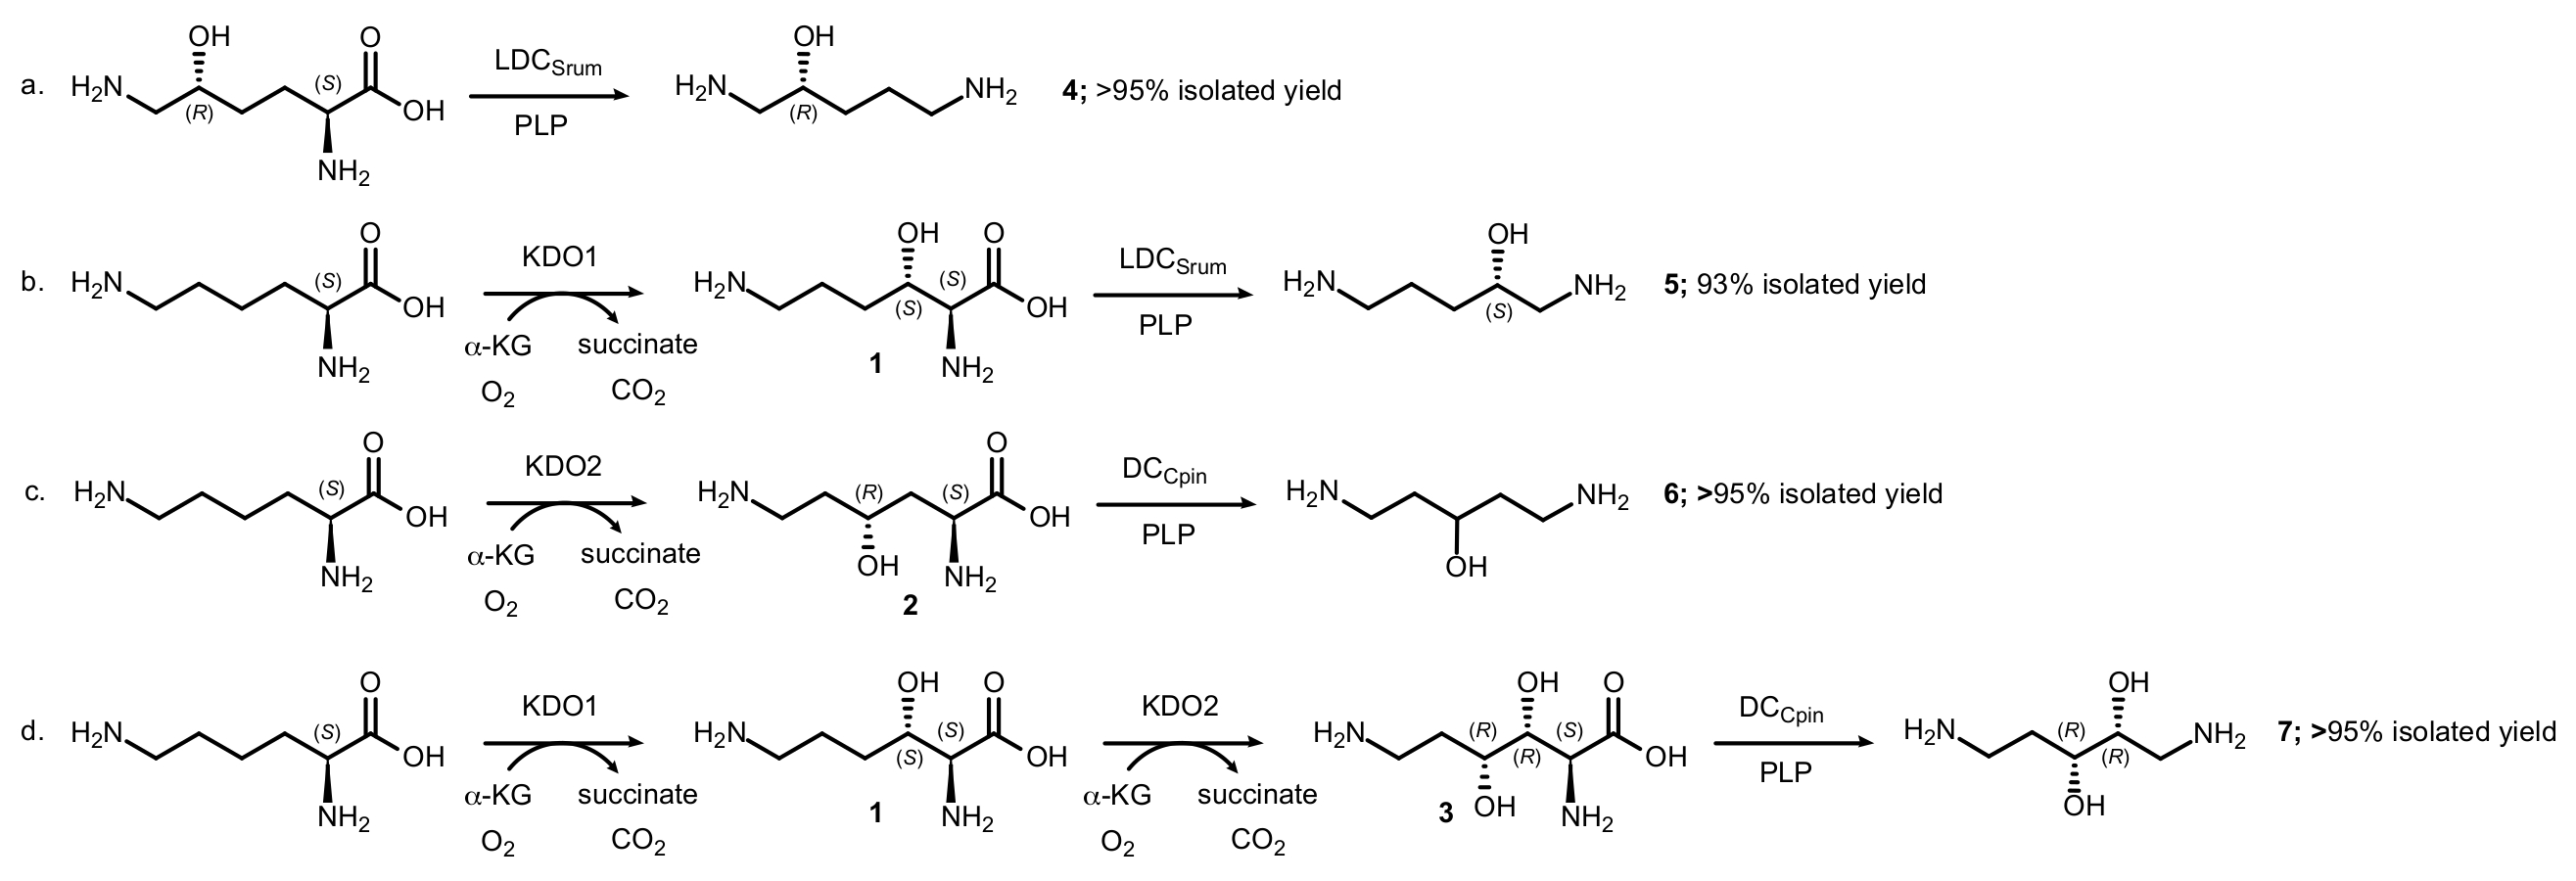 Enzymatic Cascade Reactions for the Synthesis of Chiral